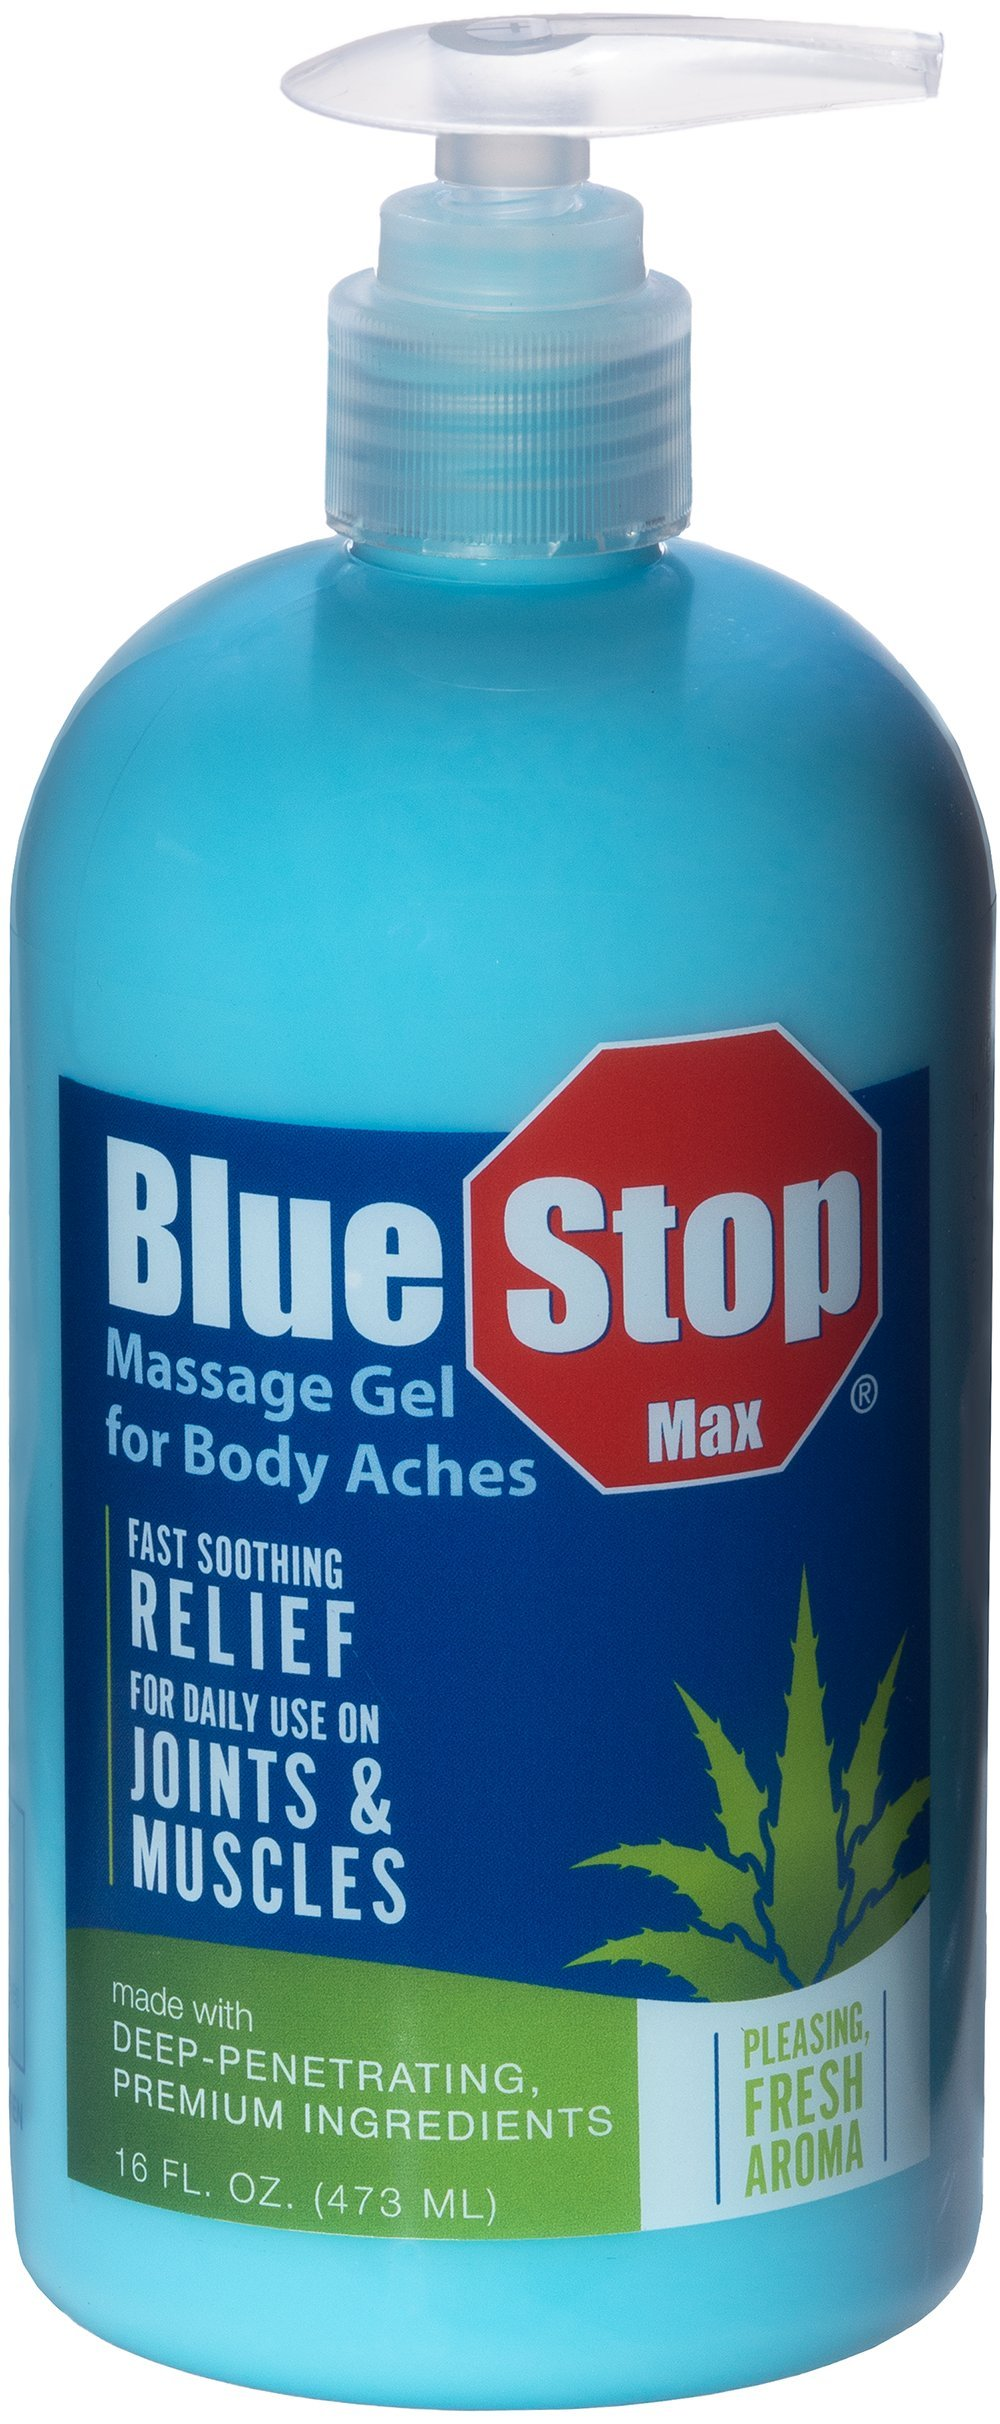 Blue Stop Max Massage Gel for Body Aches, 16 oz - 3 in 1 Product Relieves Body Aches, Supports Joints and Nourishes the Skin